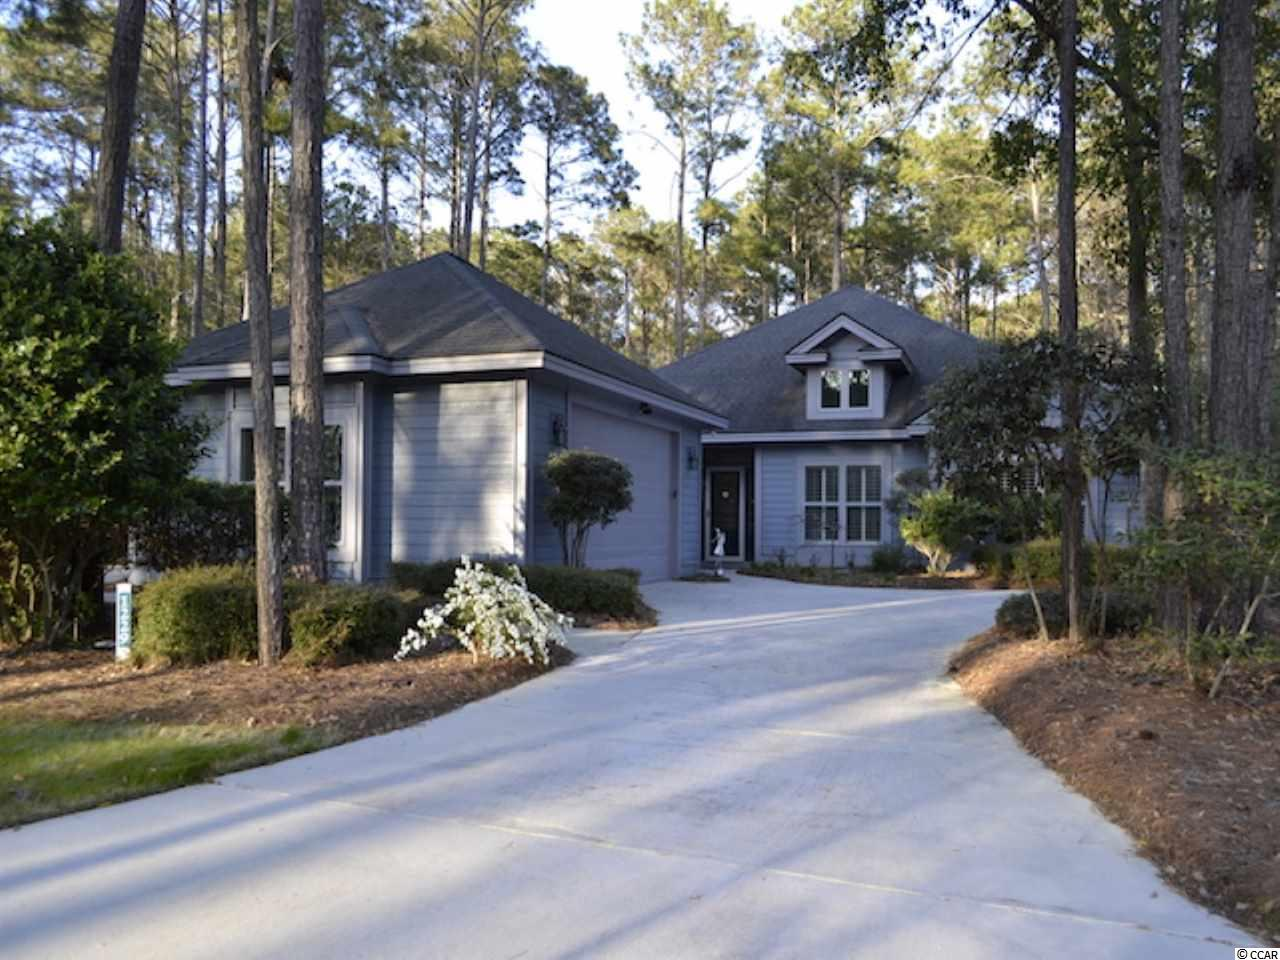 """Welcome to this 9 years young, spectacular, 3 bed, 3 bath, custom built contemporary home sitting on a rare double lot in the desirable Tidewater Plantation community!  With its 3,000 square feet of heated living space this home is one of the larger and newer homes in the Plantation neighborhood at Tidewater. Upon entering, you will step into an open and spacious living area with 20 foot high ceilings, extensive moldings, warm bamboo flooring and all bathed in natural light. The open concept living space is further complimented by a double-sided fireplace and adjoining music/television room.  The home also features an exquisite Carolina Room with 3 walls of Kolby hurricane glass, a double tray ceiling, and private access to a cozy side patio featuring a pergola and fountain for relaxing. The gourmet kitchen features top of the line Shivakashi granite counters with full backsplash, top-of-the-line stainless steel appliances, and a gas range with a custom hood. The generous master suite includes a double tray ceiling with ceiling fan, walk-in closets and an en-suite bath with a large garden tub, dual sinks and a walk-in shower with artfully crafted blue granite and tile. The other two large bedrooms, one of which can also be used as an office and includes a custom designed """"More Space"""" bedding unit, share access to the second lovely bath with a vessel sink, marble floors and double-head shower with crafted tile. It also features a mud/laundry room with a 3rd bathroom perfectly placed for a shower after your return from the beach.  The outdoor space offers a private backyard patio with mature landscaping. A circular driveway leads to an adjoining one-of-a kind """"drive through"""" oversized two-car garage with custom cabinets and floor covering. The home also features a security system, built-in speakers throughout, Rinnai hot water system, irrigation, and CertainTeed all weather board exterior siding. Tidewater Plantation residents also enjoy an ocean side cabana, a top 10"""